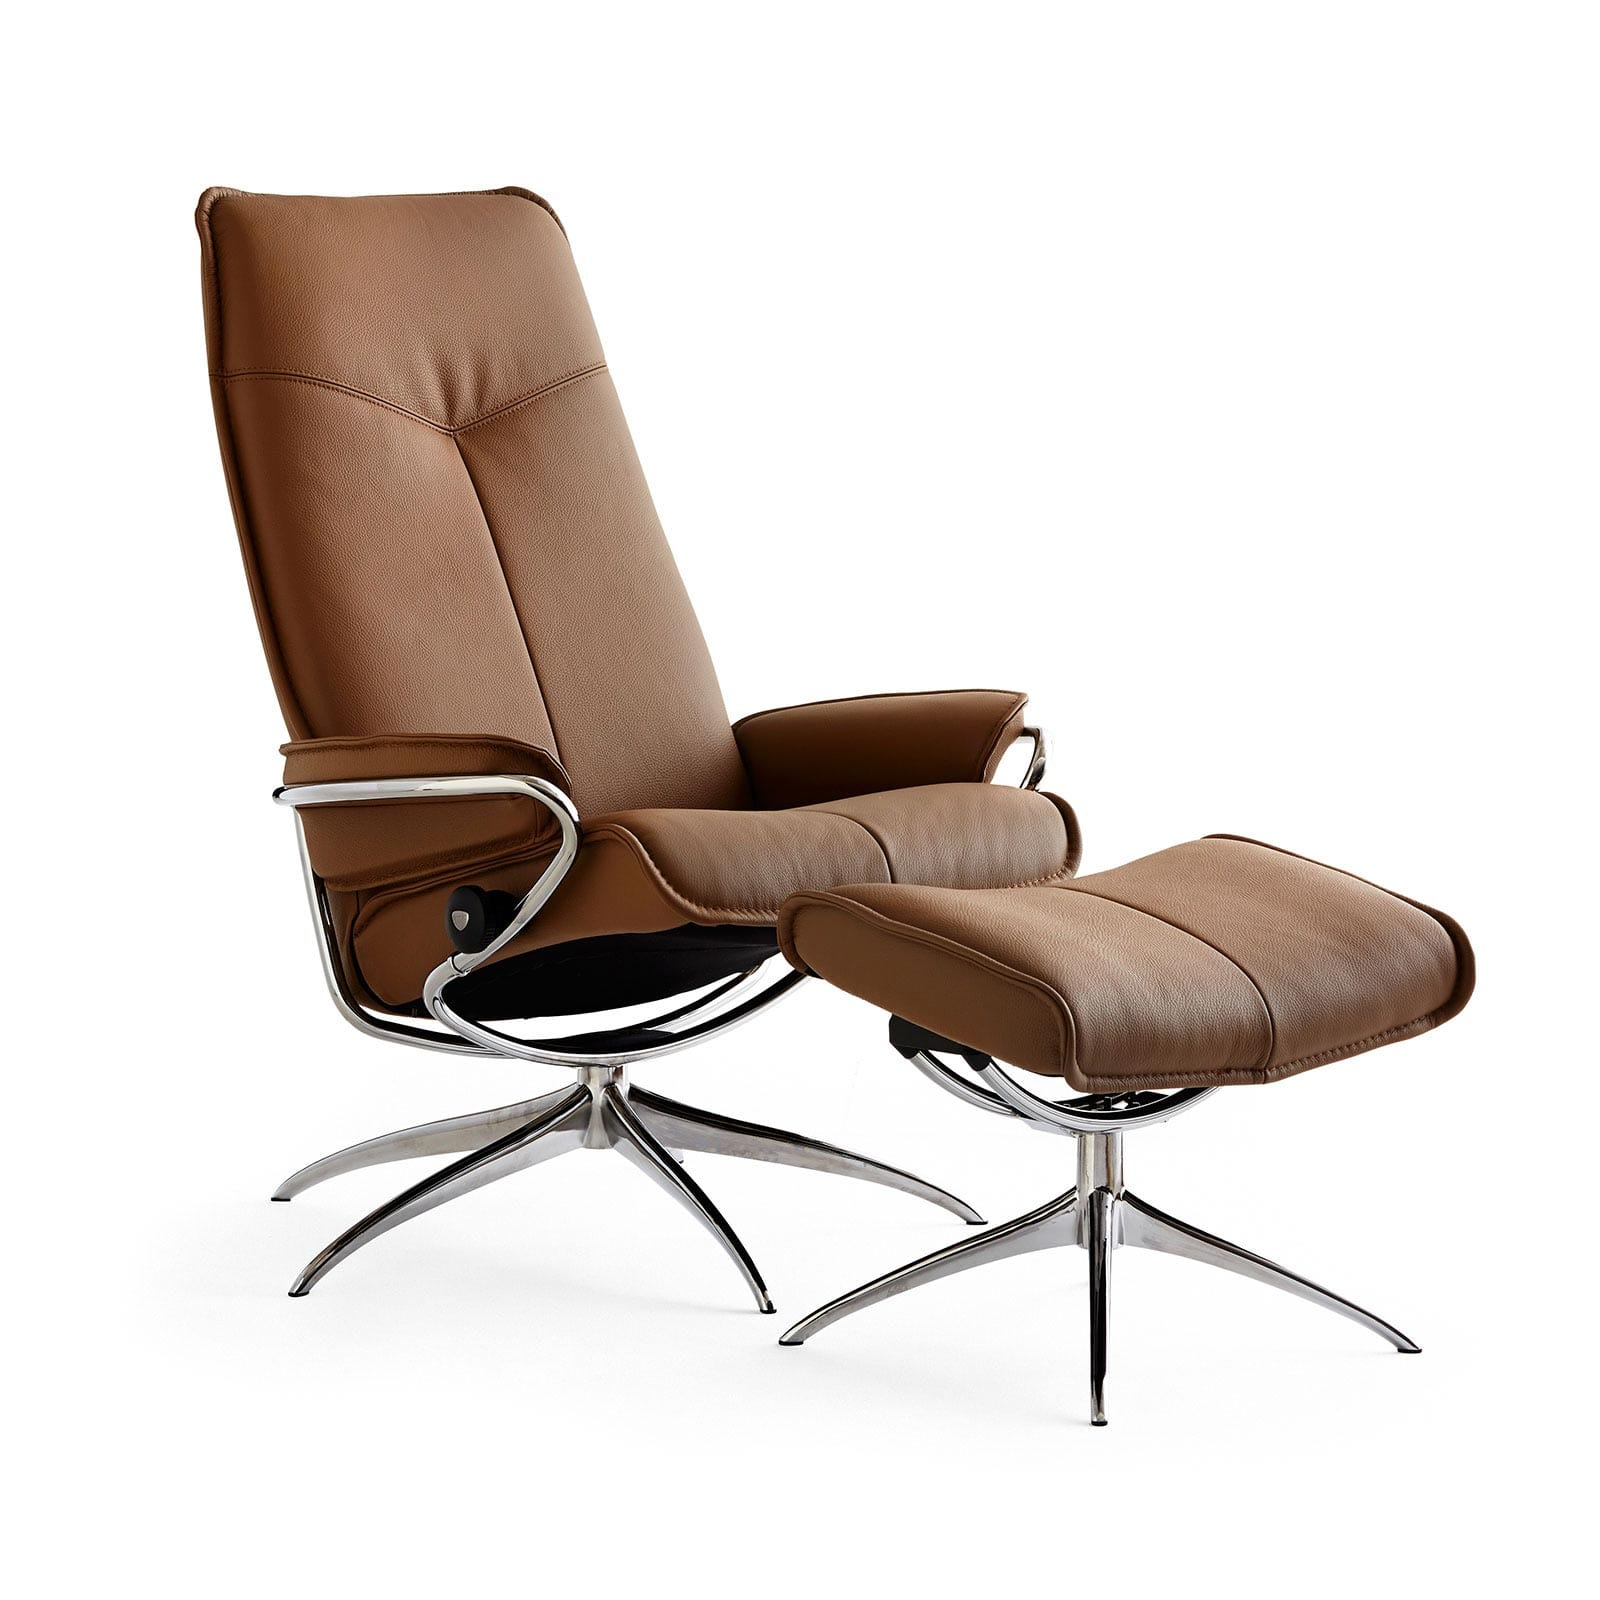 Relaxsessel stressless  Stressless Sessel CITY High Back mit Hocker Taupe/Chrom